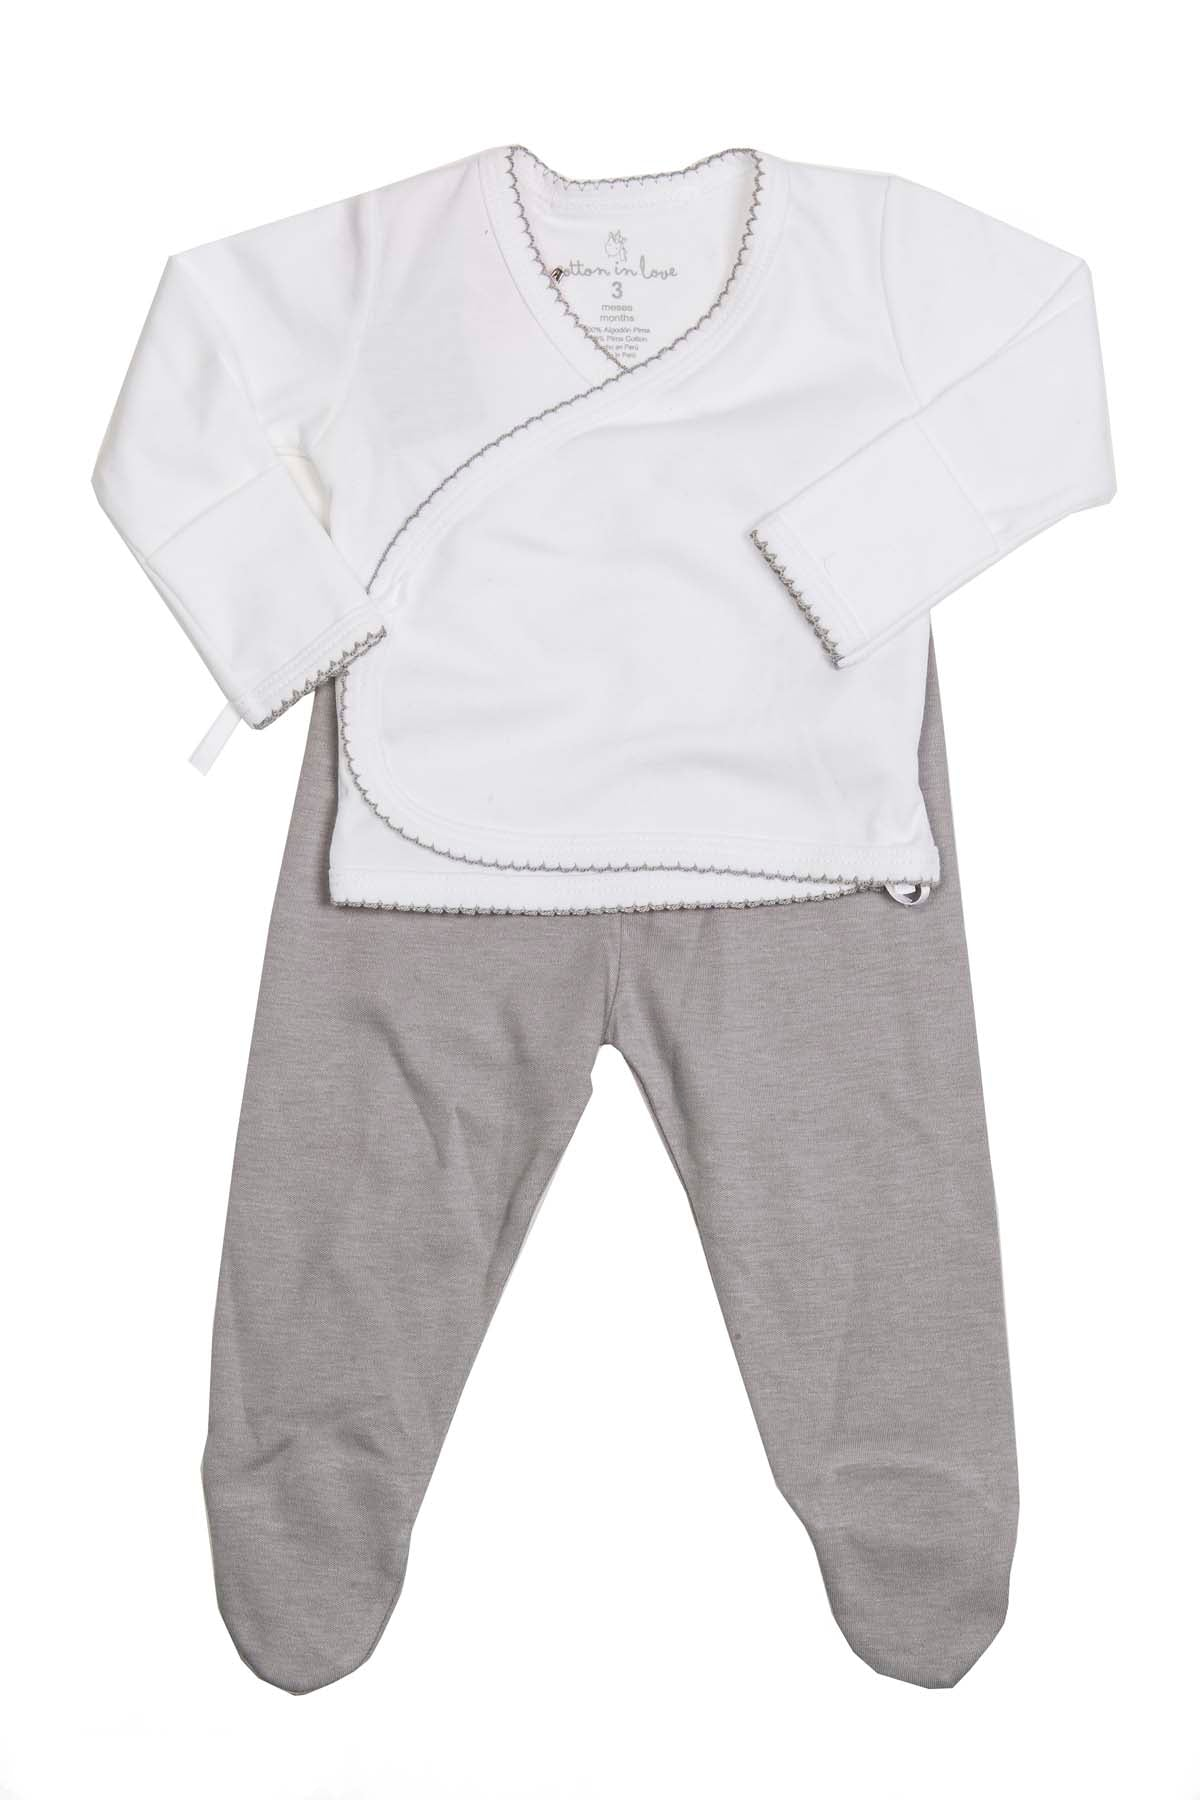 Newborn Set 2 pieces Grey Pima Cotton